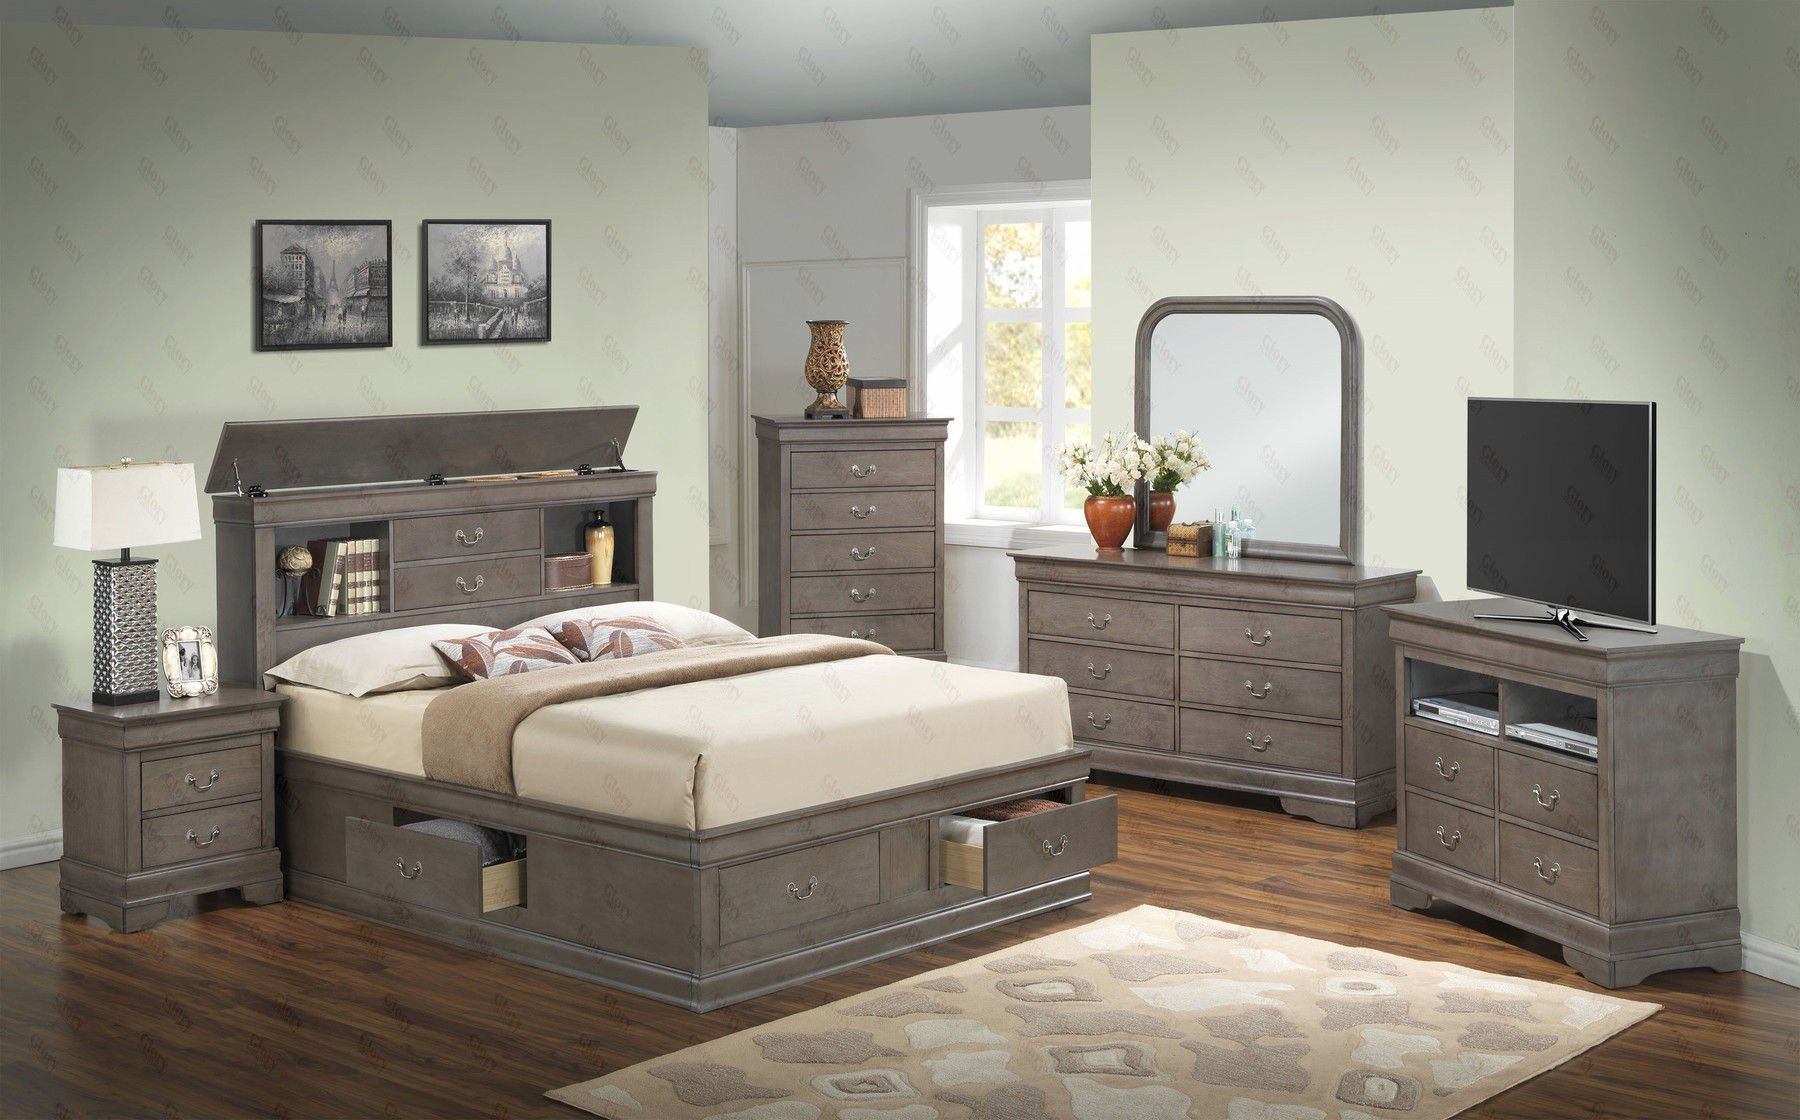 Cheap Queen Size Bedroom Set Beautiful Louis Philippe B Queen Set Gray Queen Size B 2ns Dr Mr Ch